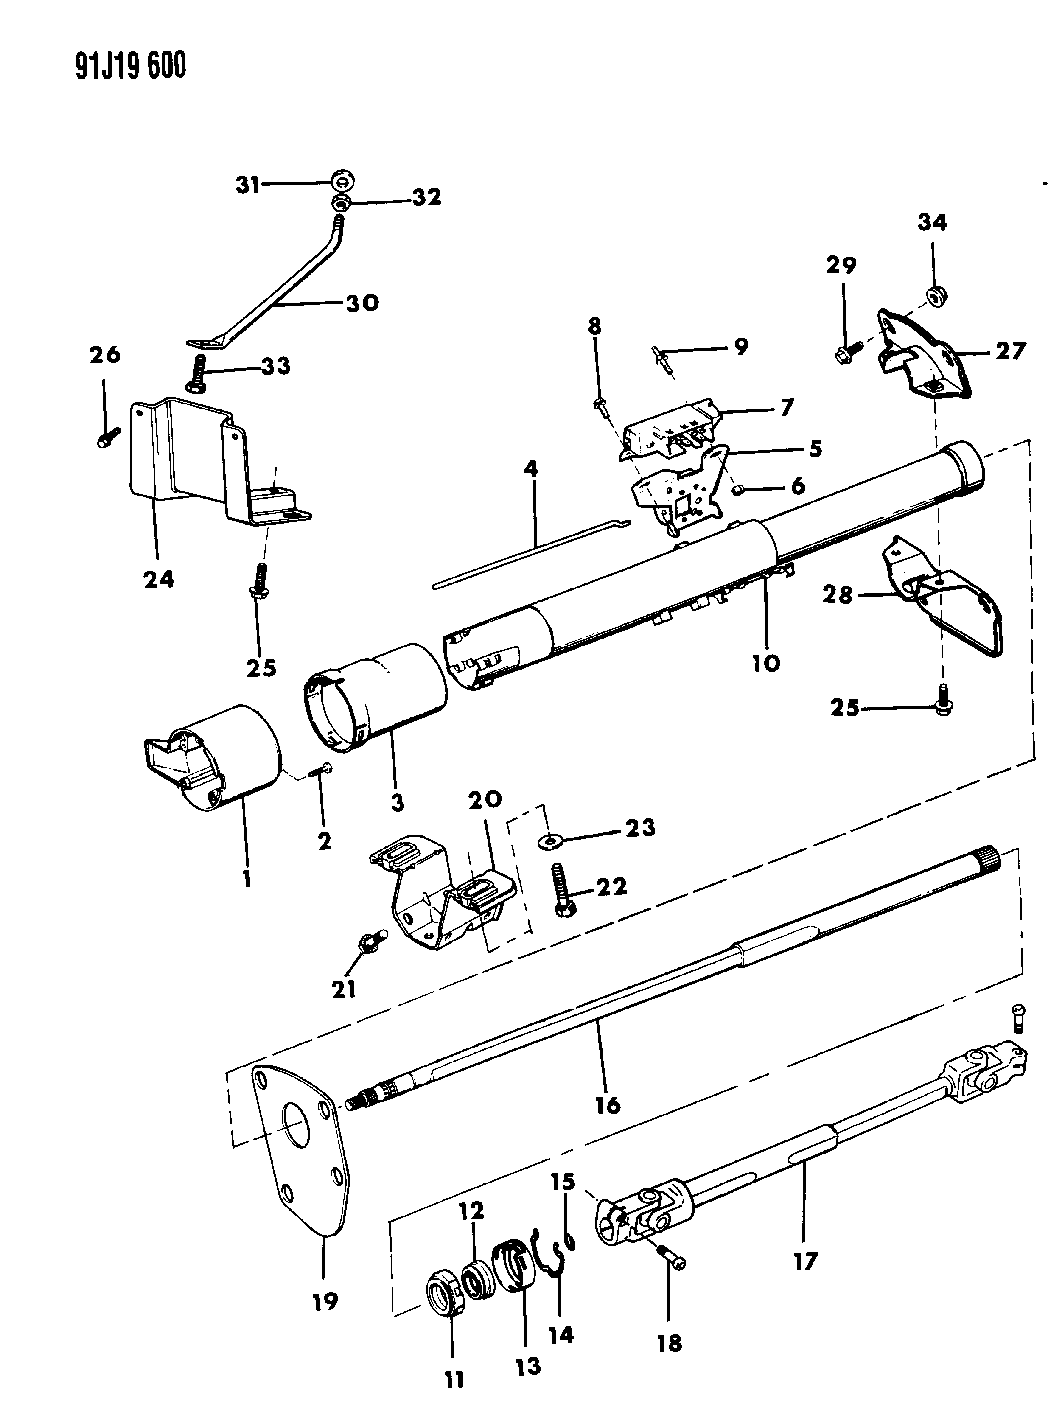 1992 Jeep Wrangler Housing - Steering Column Lower - Thumbnail 1